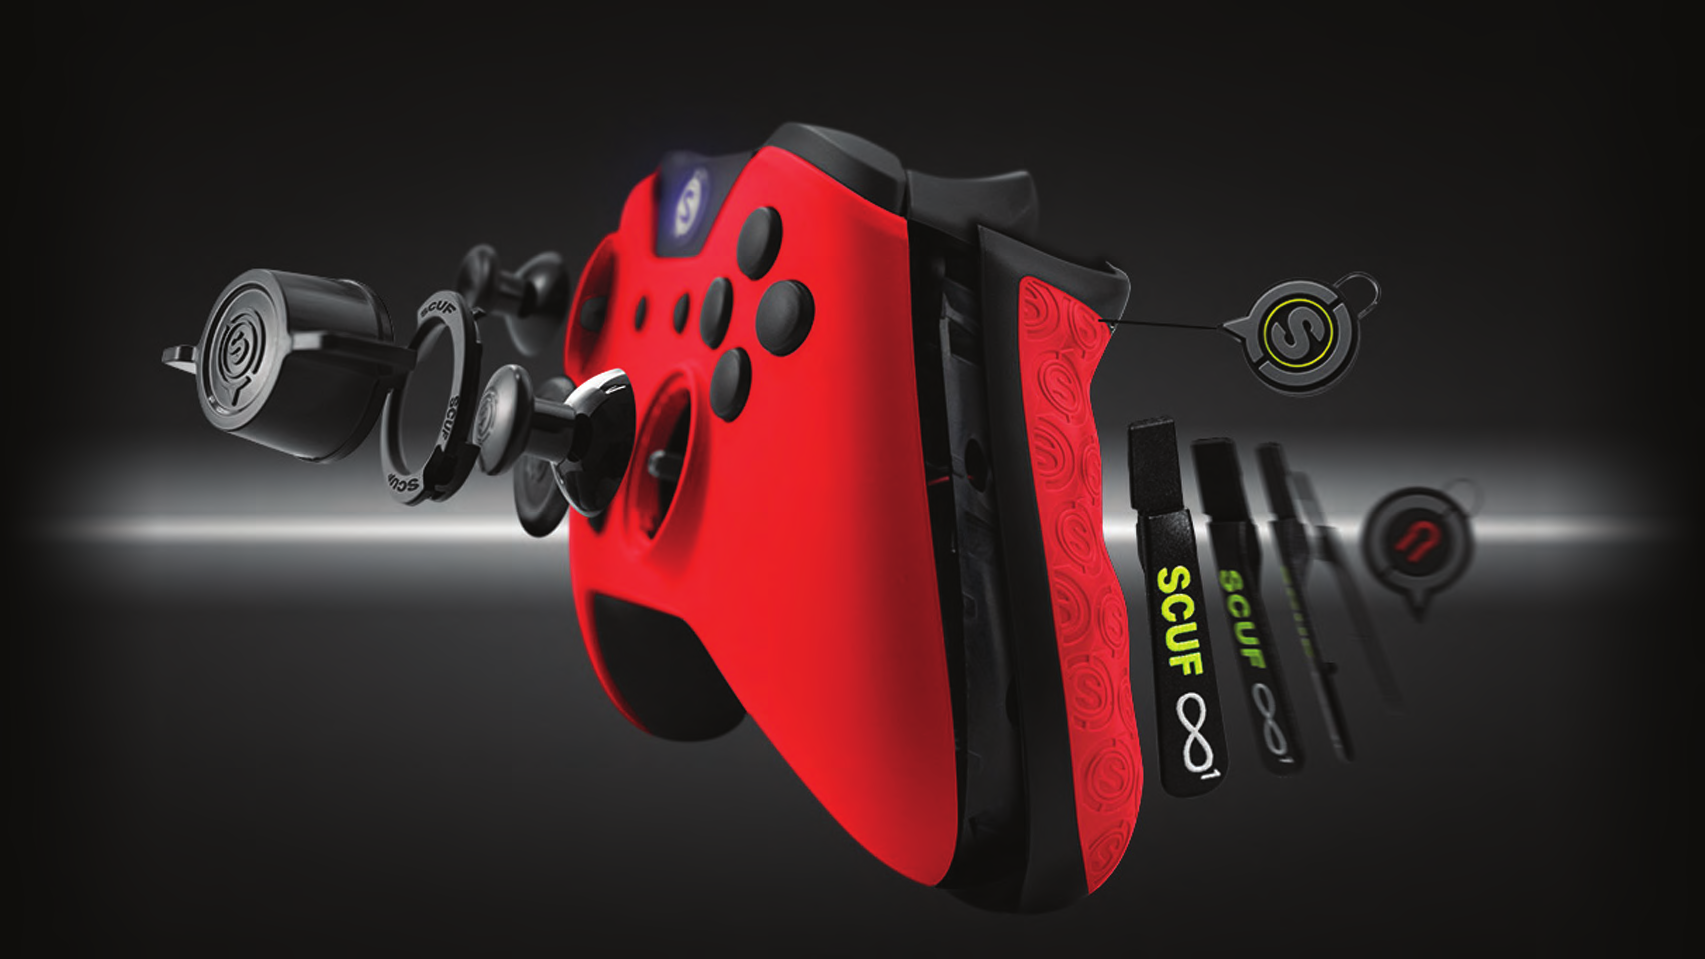 SCUF Gaming store hacked to steal credit card info of 32,000 customers